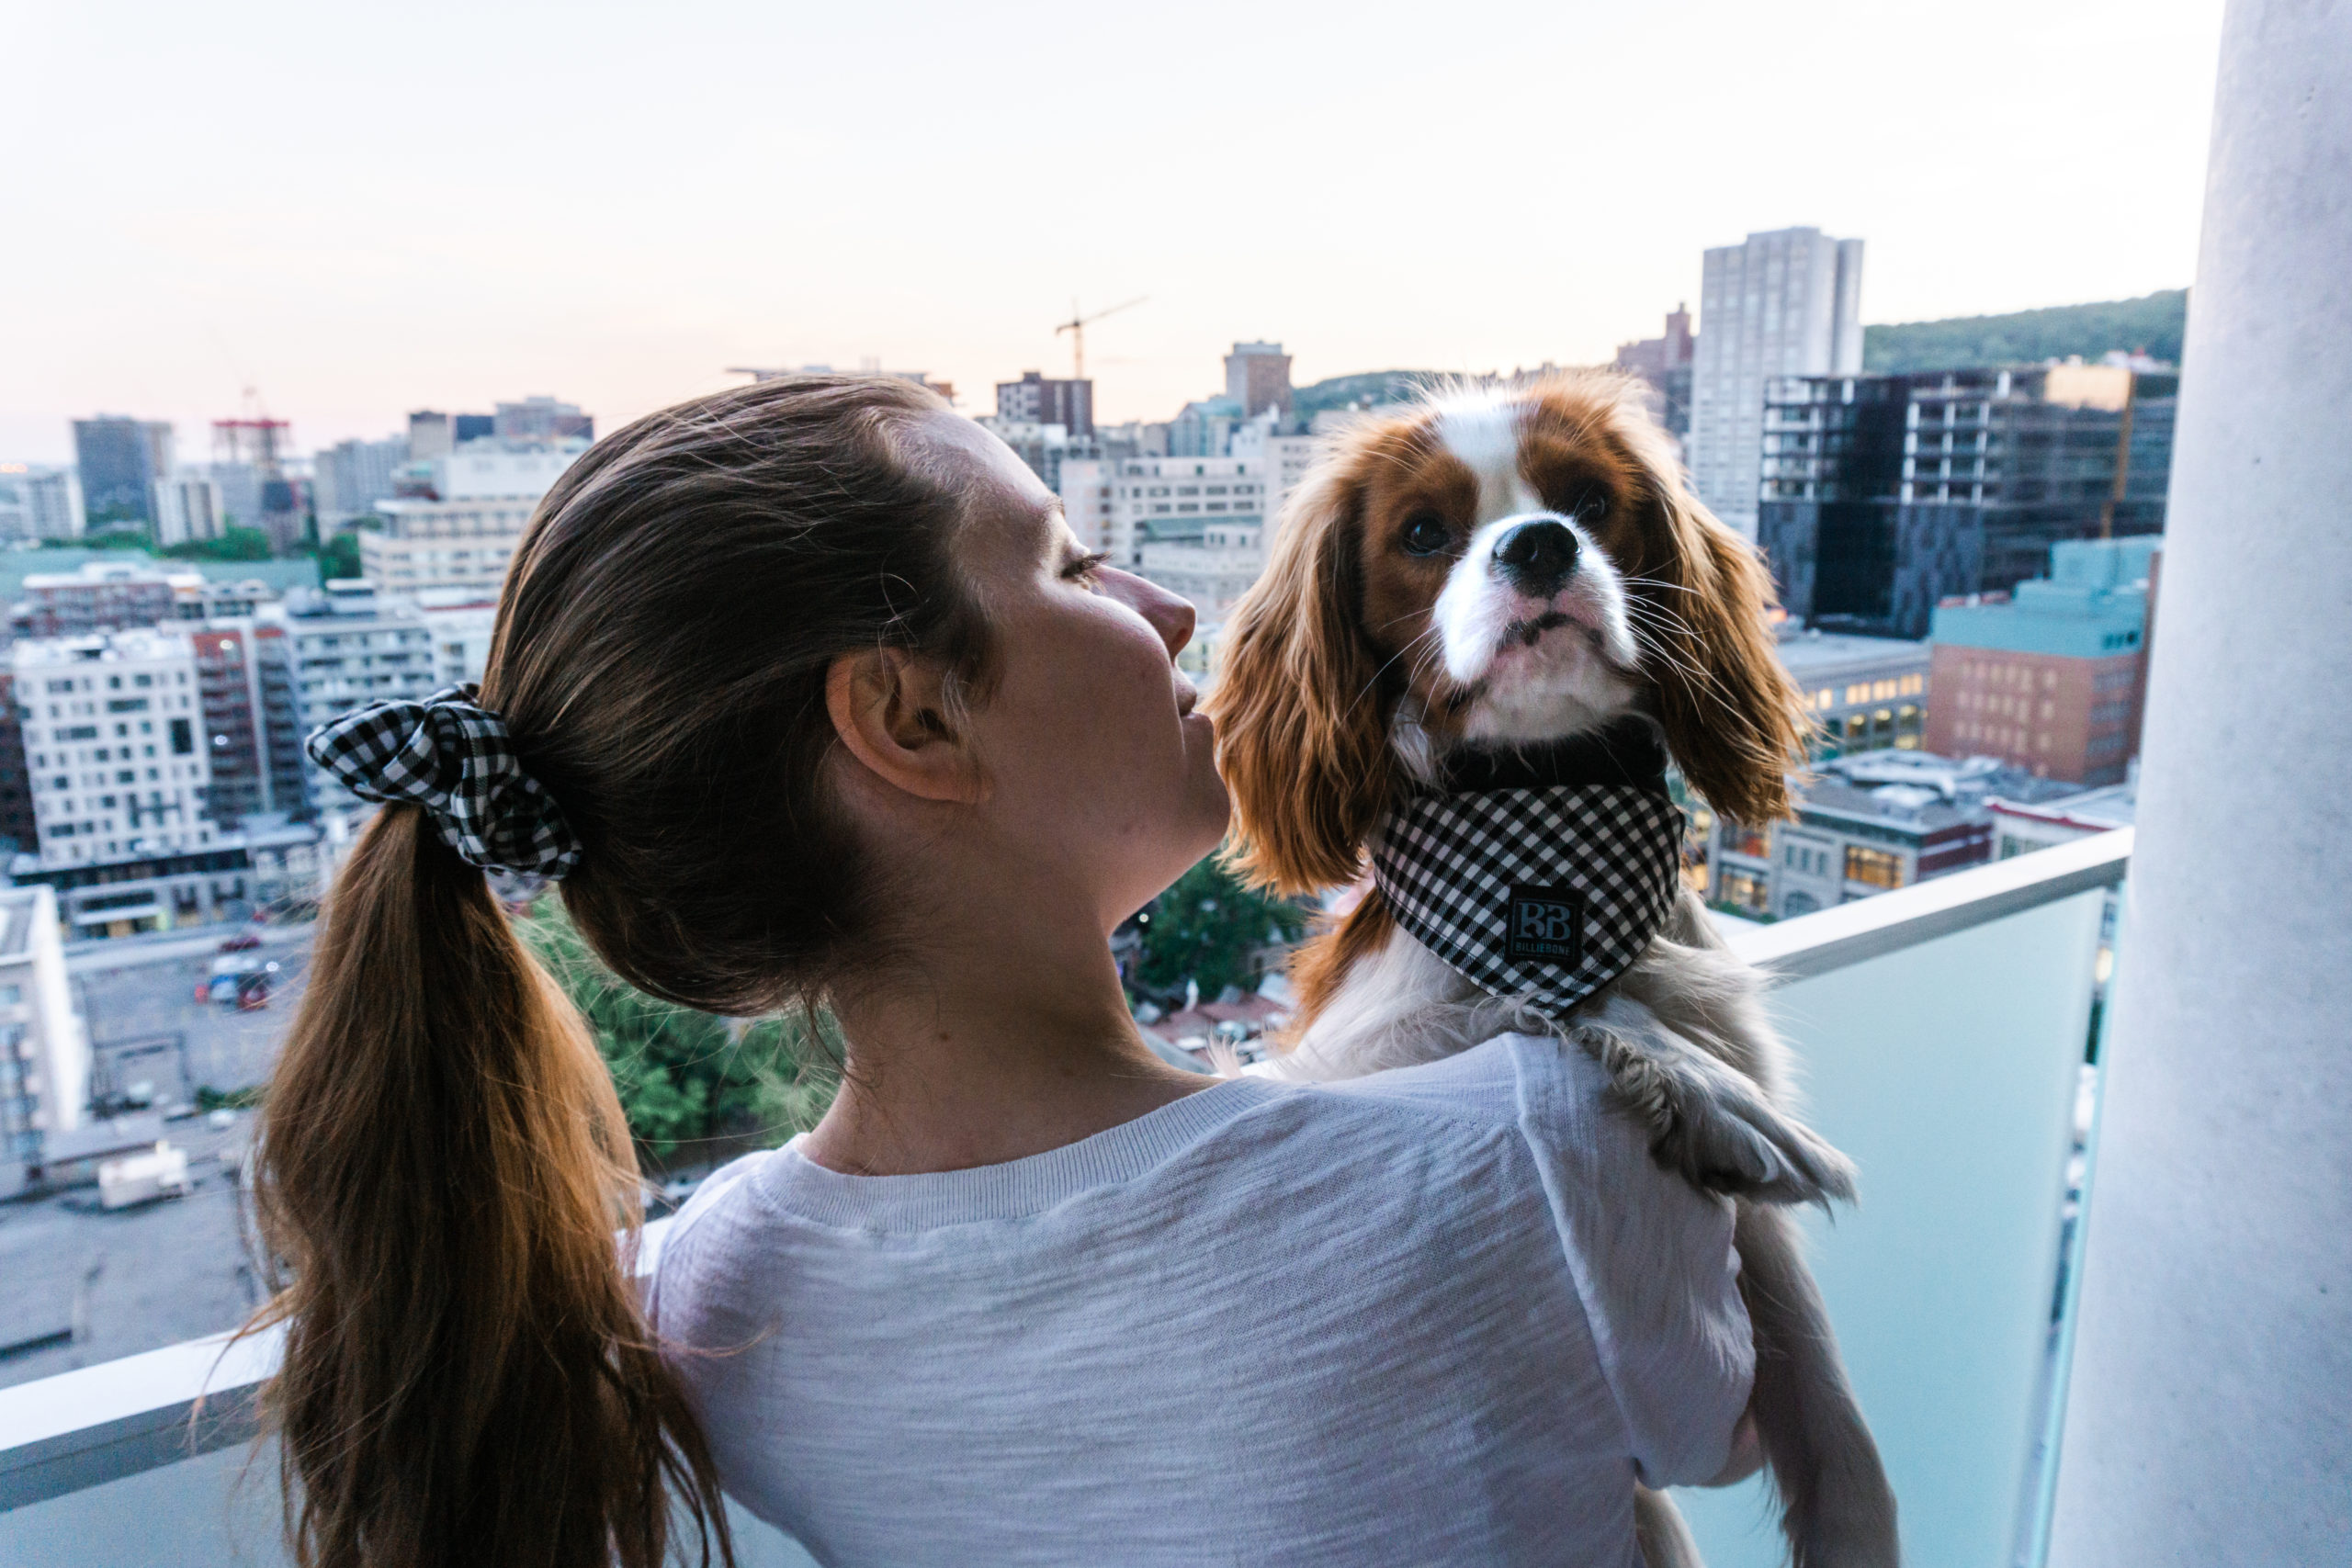 Girl and Dog in the City wearing matching Scrunchie and Bandana